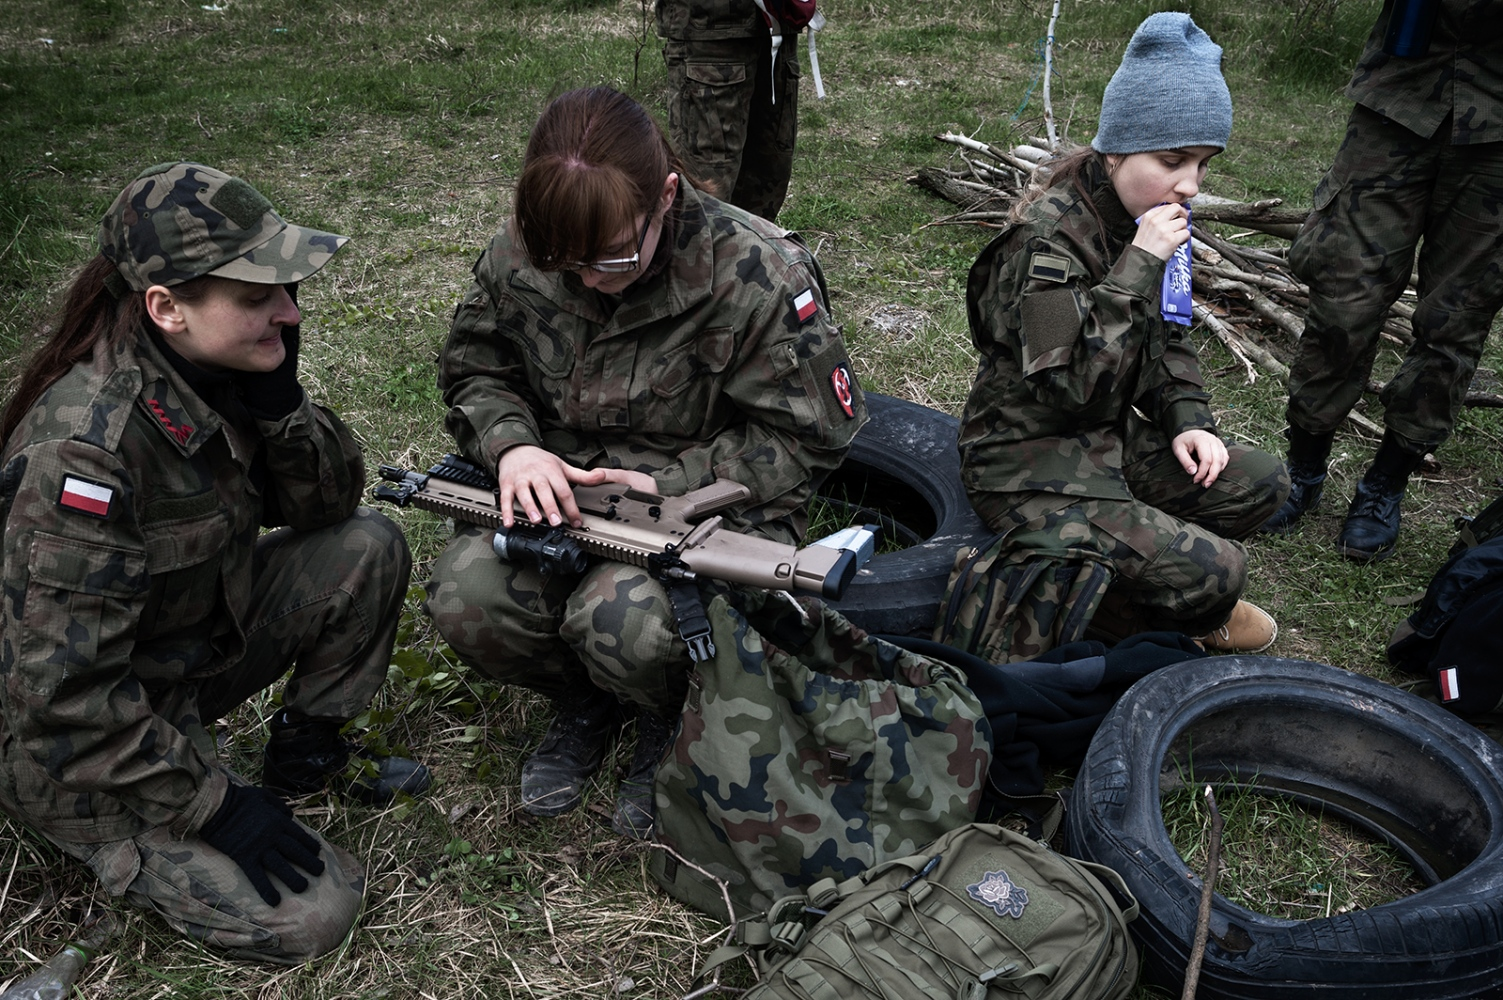 """Students between 16 and 19 years old rest after the practical activities carried out by a paramilitary organization within the frame of a""""Military Profile Classes"""" program in the public high school in B. Currently, in Poland the number of students enrolled in this type of program is estimatedat 57.000, but the Ministry of National Education does not have official data in this regard."""